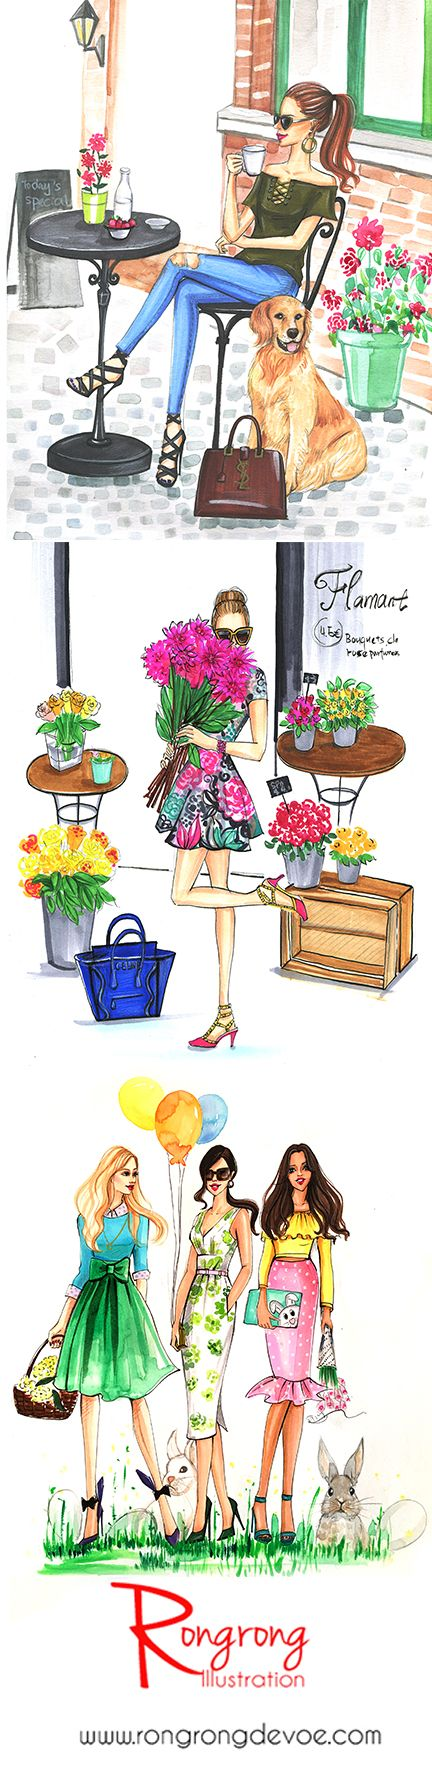 Rongrong DeVoe Illustration Portfolio – Hand Drawing Fashion Illustrator and Artist based in Houston, United States. More of her fashion illustrations at www.rongrongdevoe.com